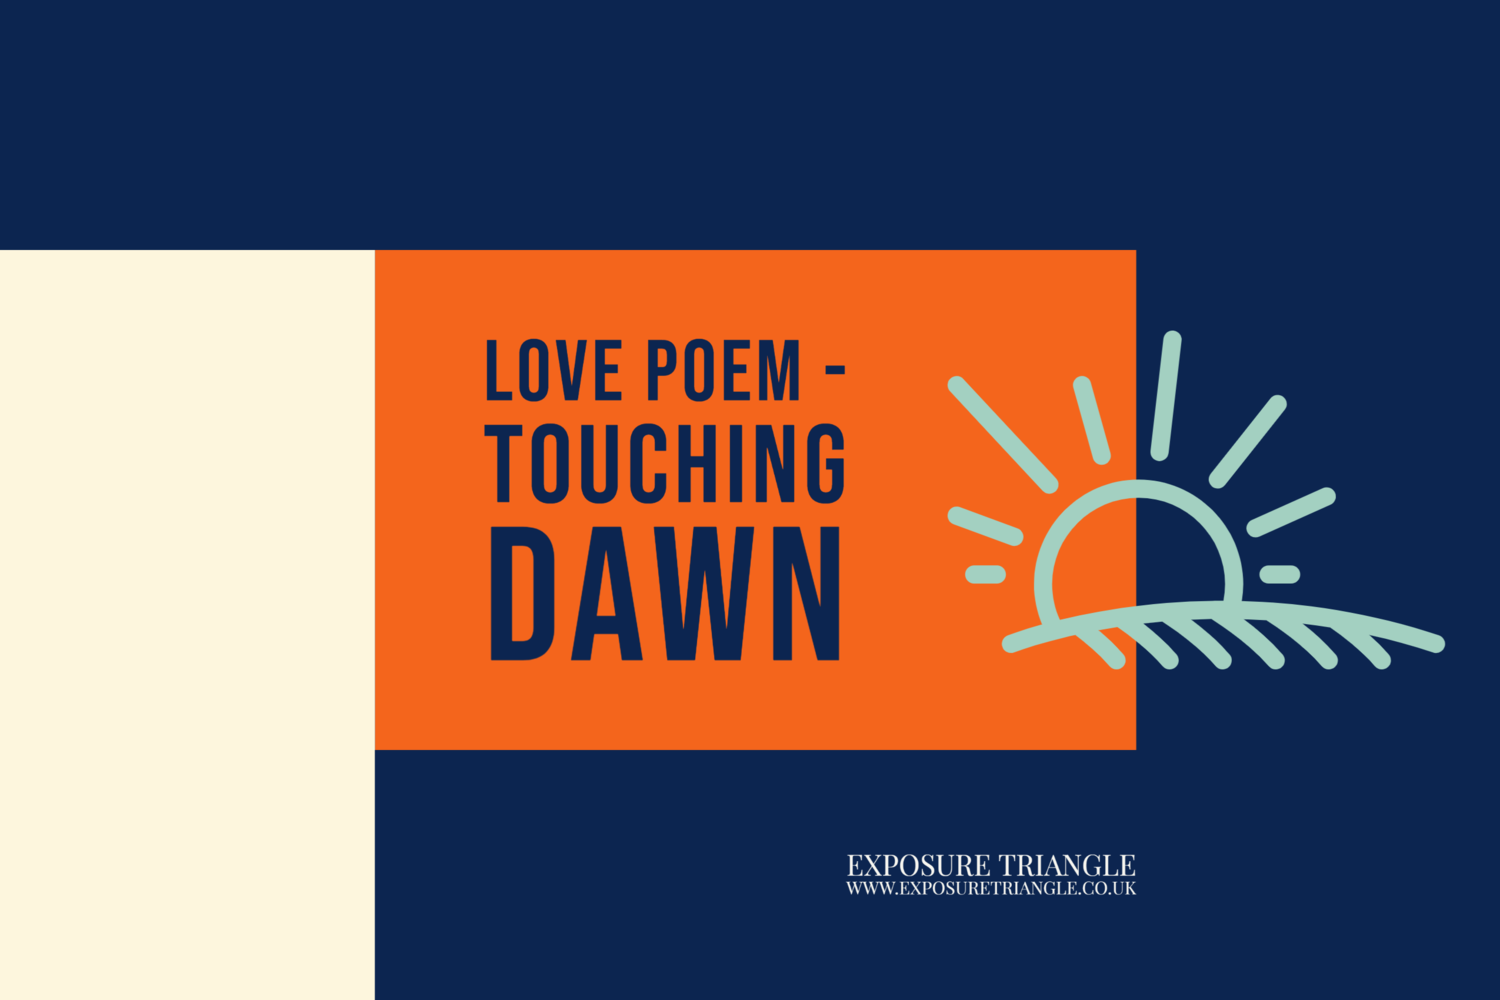 Love Poem Touching Dawn — Exposure Triangle